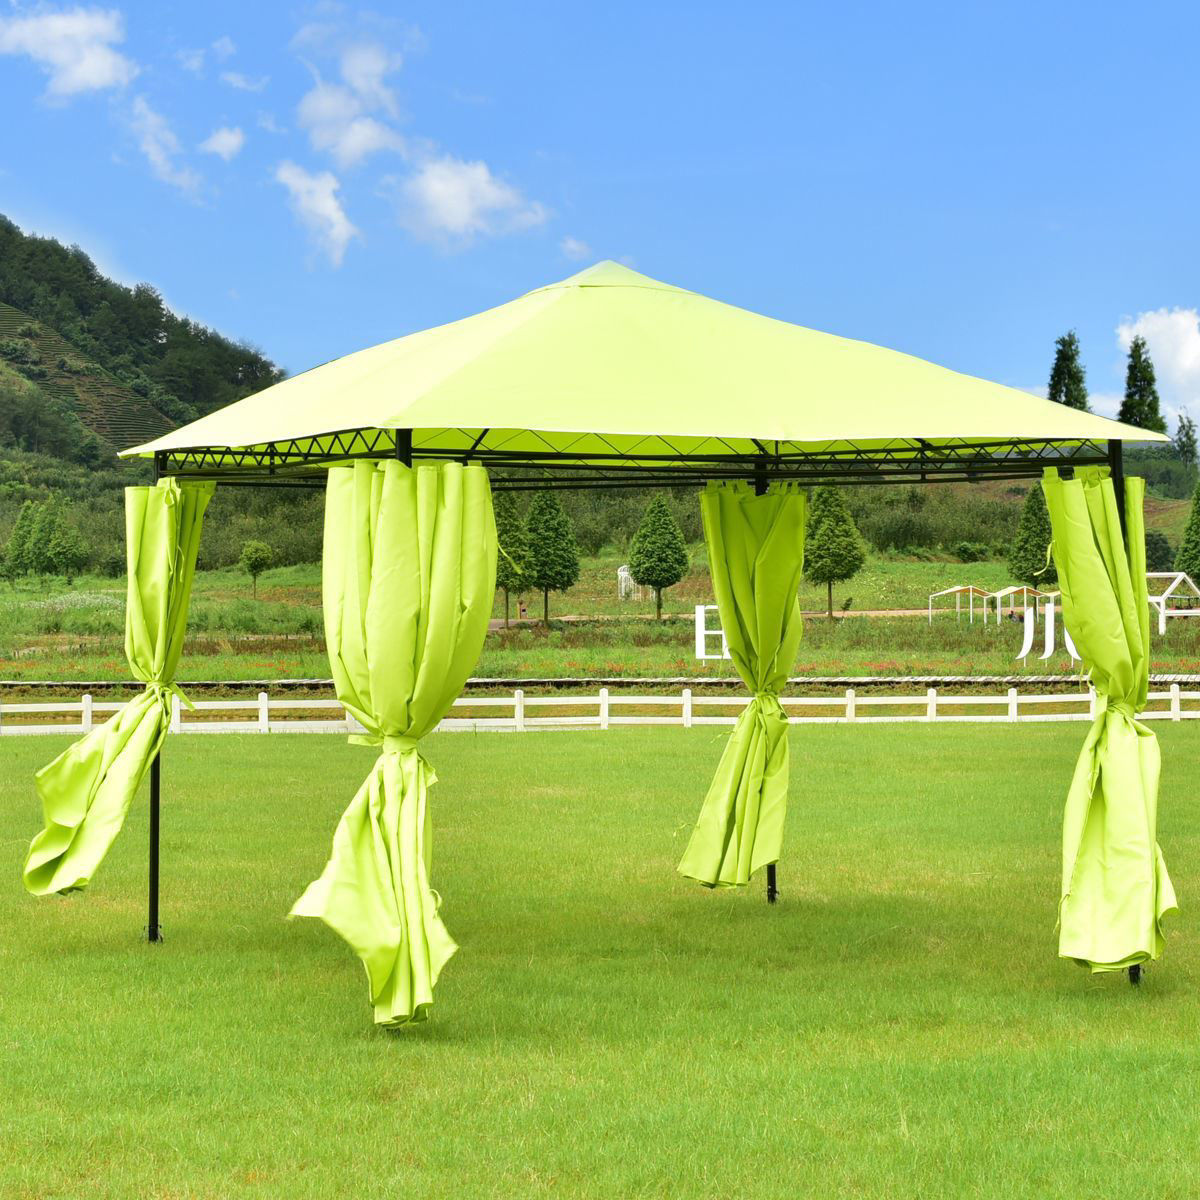 Picture of Outdoor 10'x10' Patio Canopy Tent Gazebo with 4 Walls - Bright Green